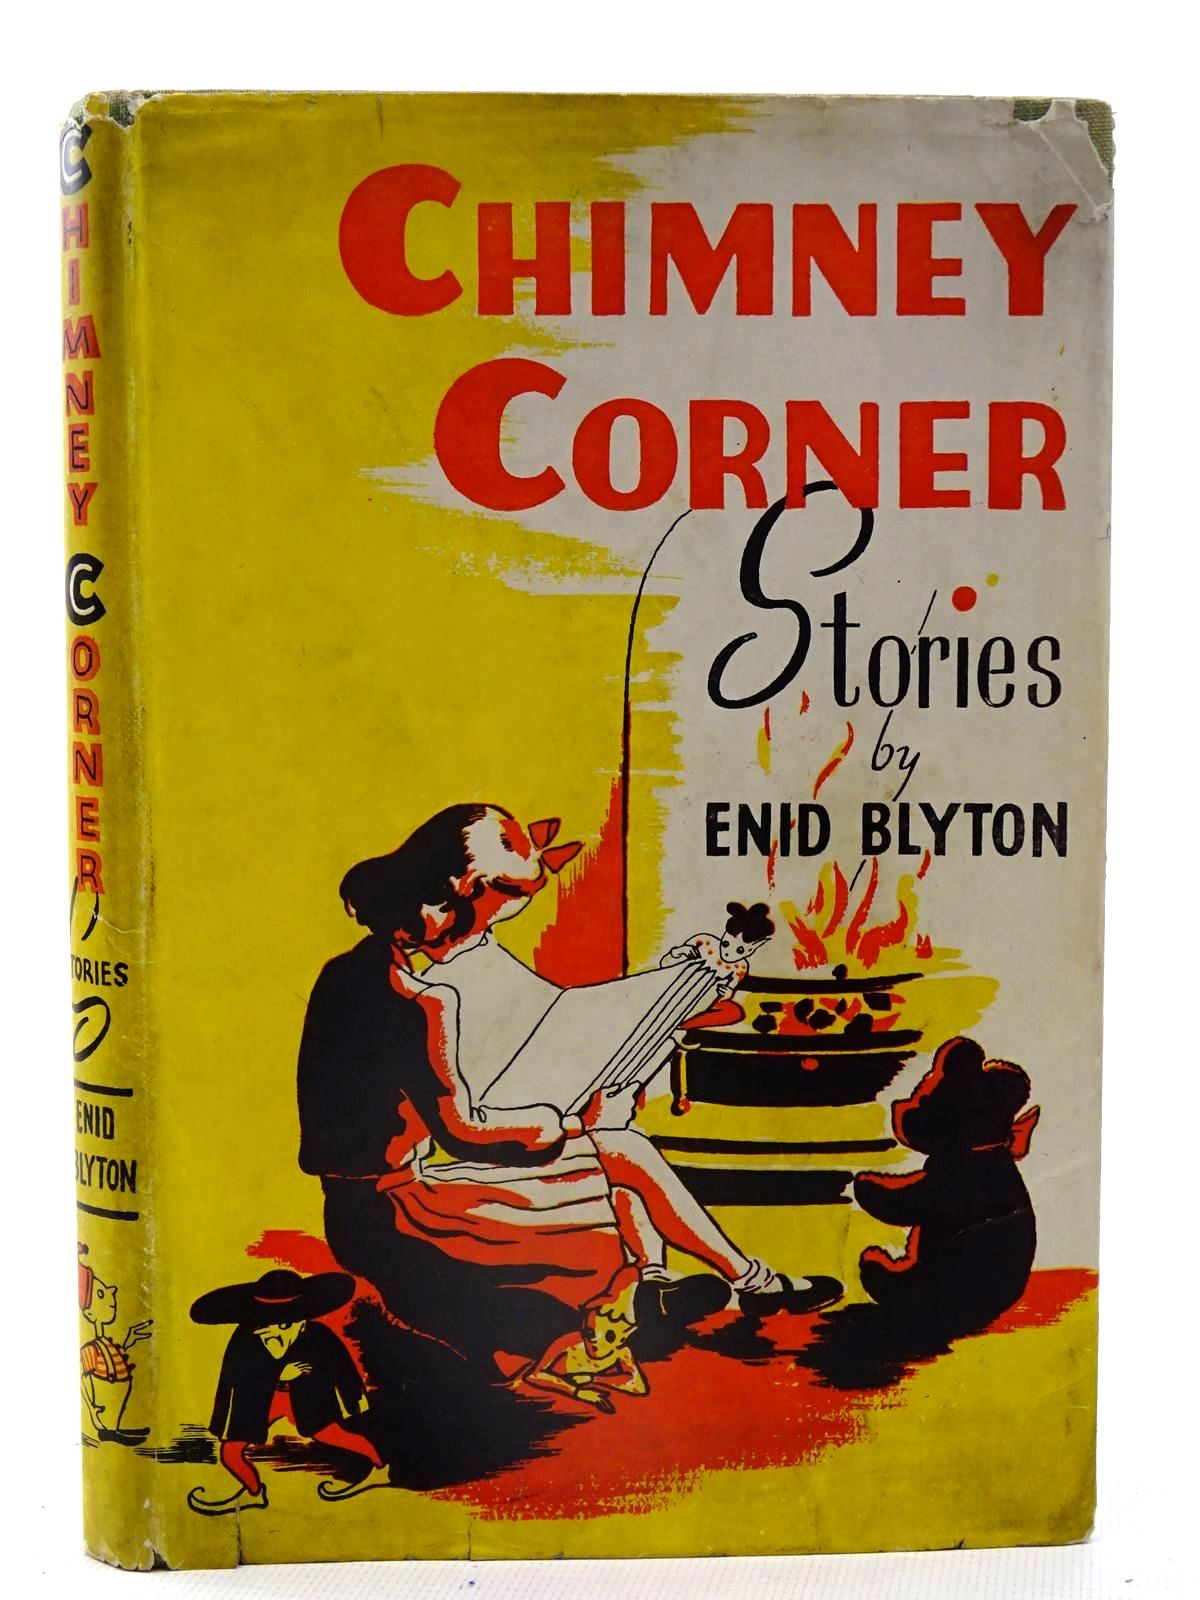 Photo of CHIMNEY CORNER STORIES written by Blyton, Enid illustrated by Harrison, Pat published by The National Magazine Co. Ltd. (STOCK CODE: 2126227)  for sale by Stella & Rose's Books